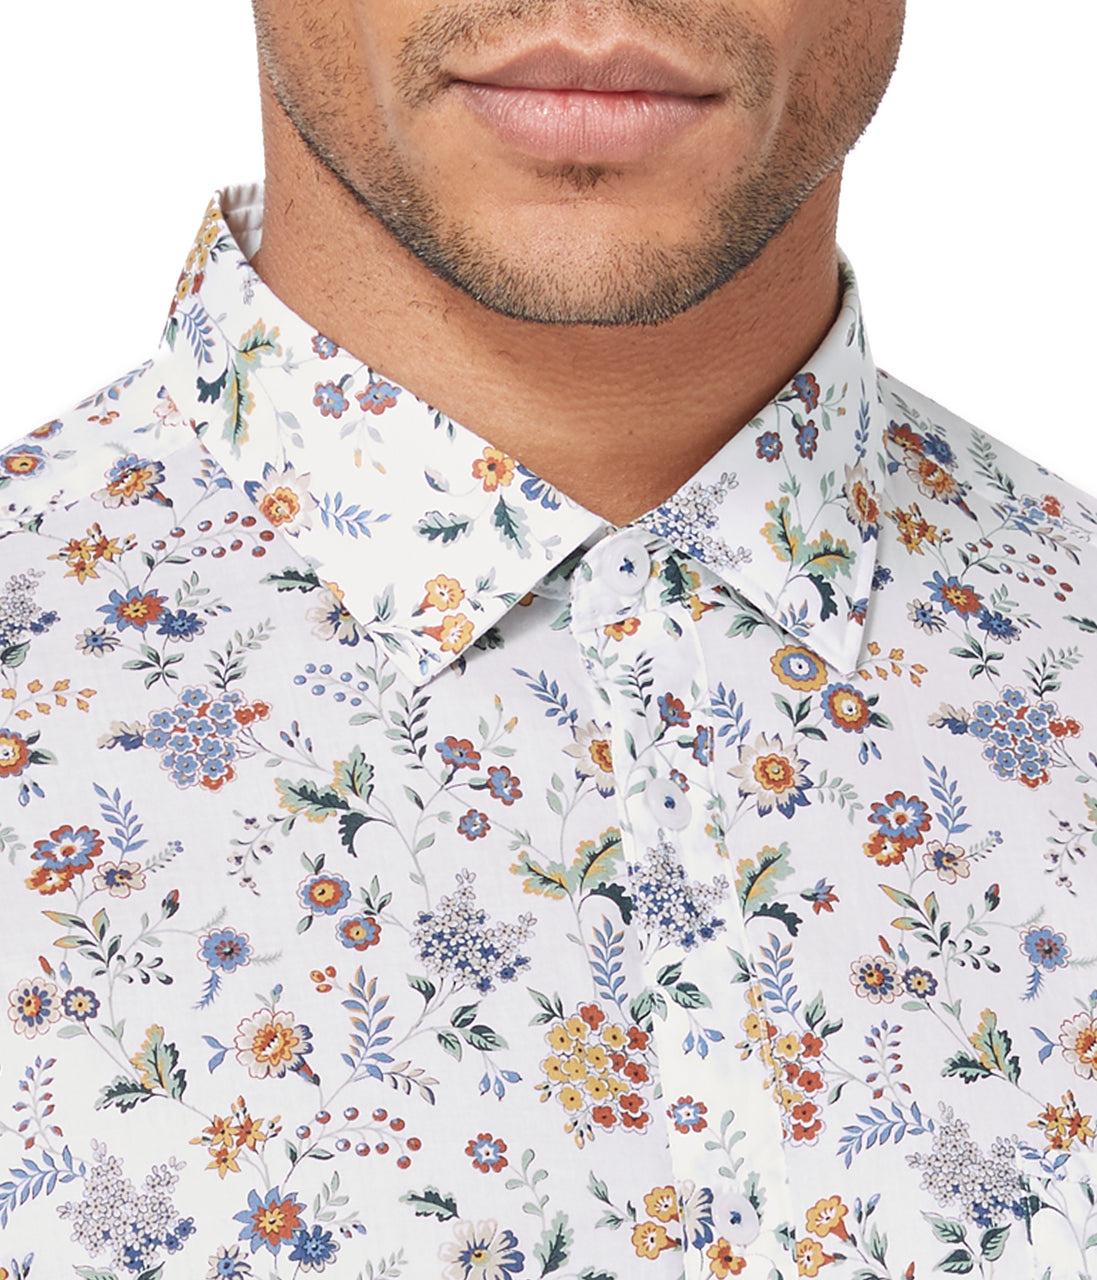 On-Point Print Shirt - Yellow Floral Street - Good Man Brand - On-Point Print Shirt - Yellow Floral Street